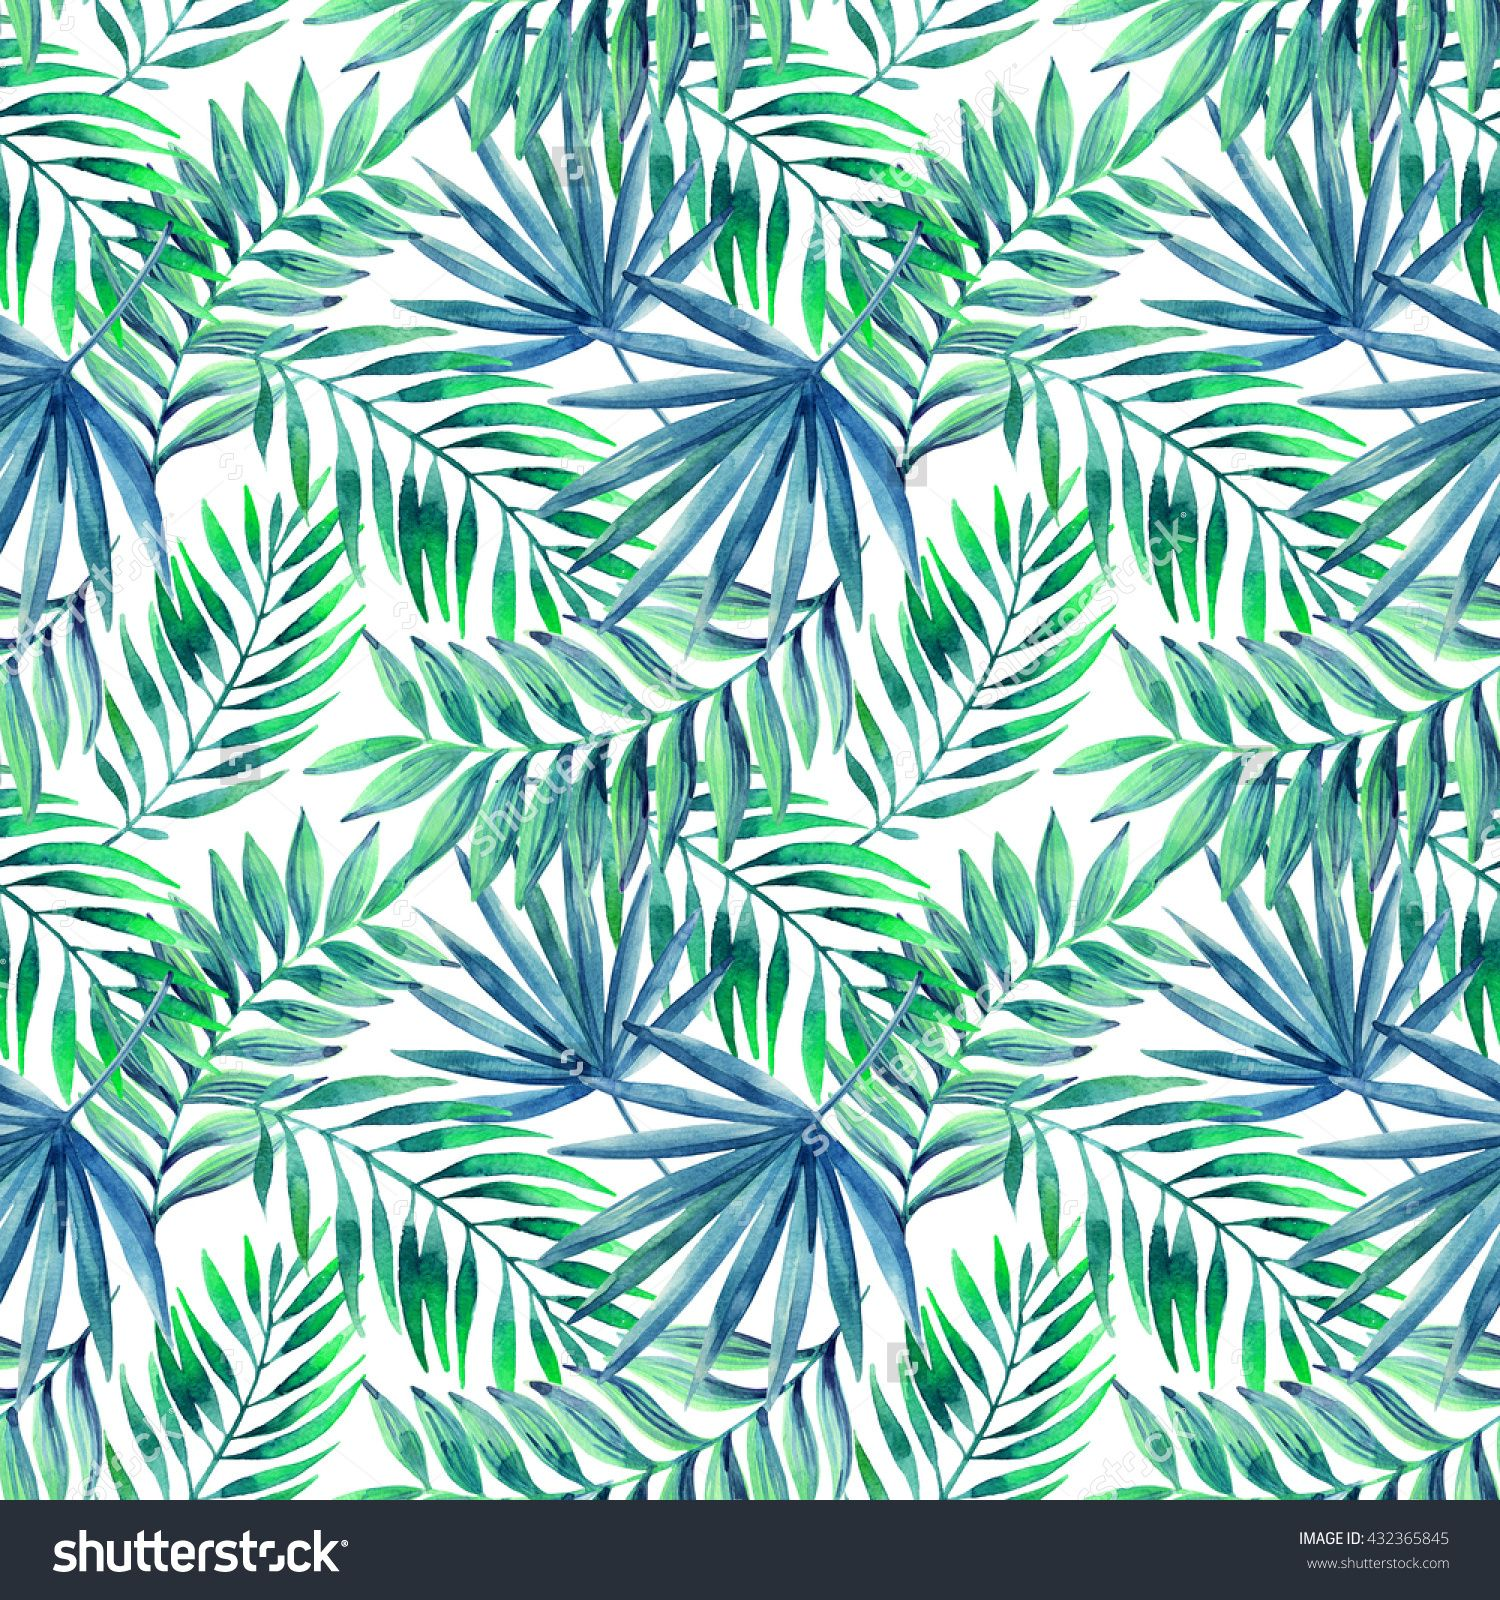 Watercolor Tropical Leaves Seamless Pattern. Jungle Leaves